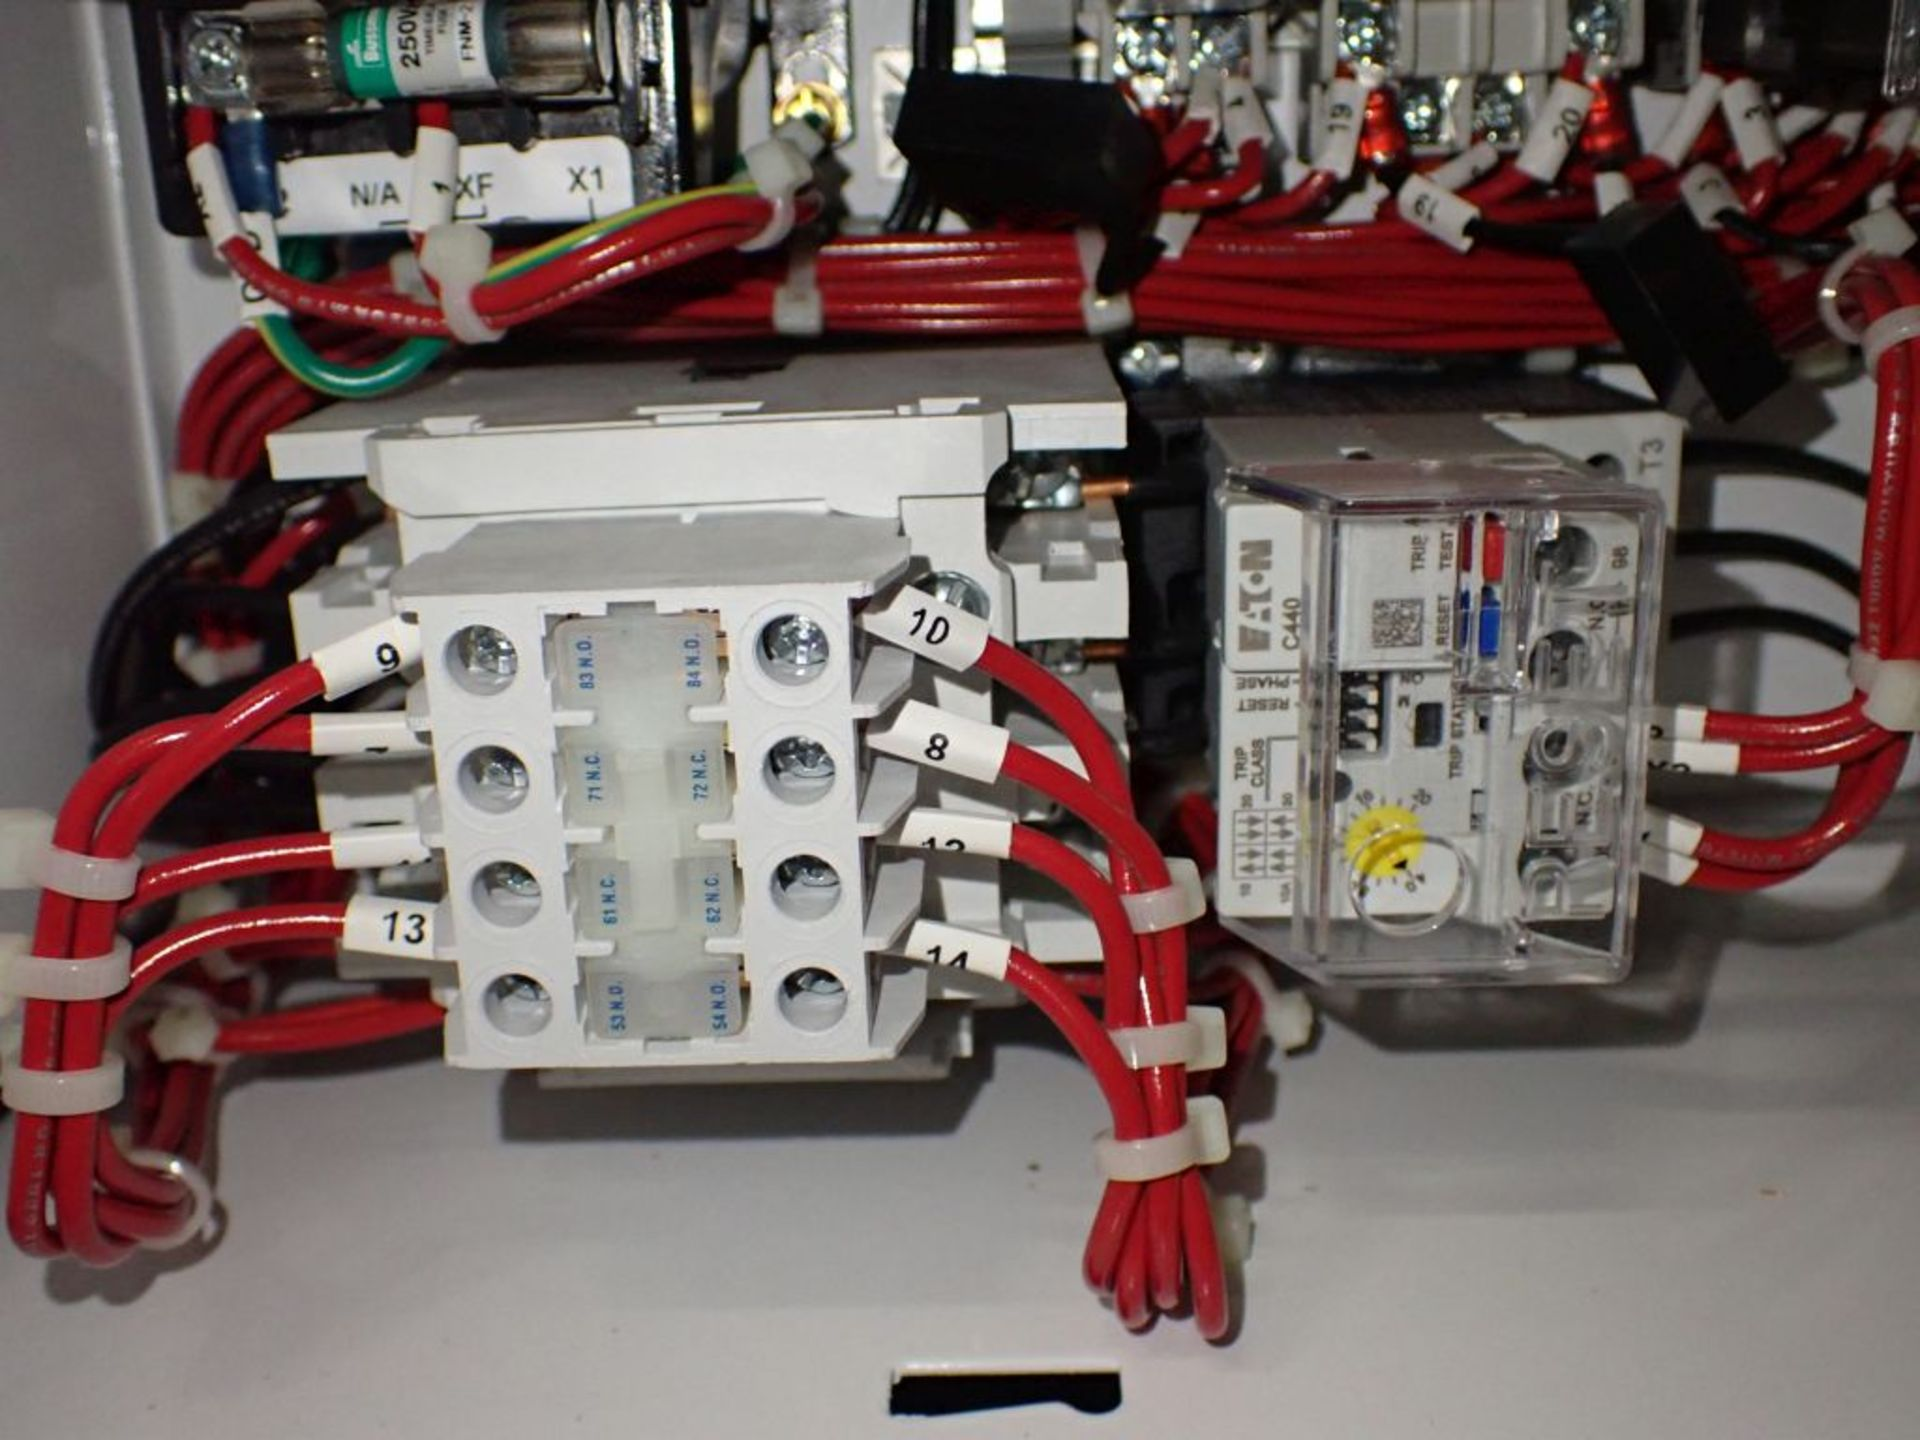 Eaton Freedom 2100 Series Motor Control Center | (11) F206-30A-10HP; (5) F206-15A-10HP; (1) SVX900- - Image 74 of 102